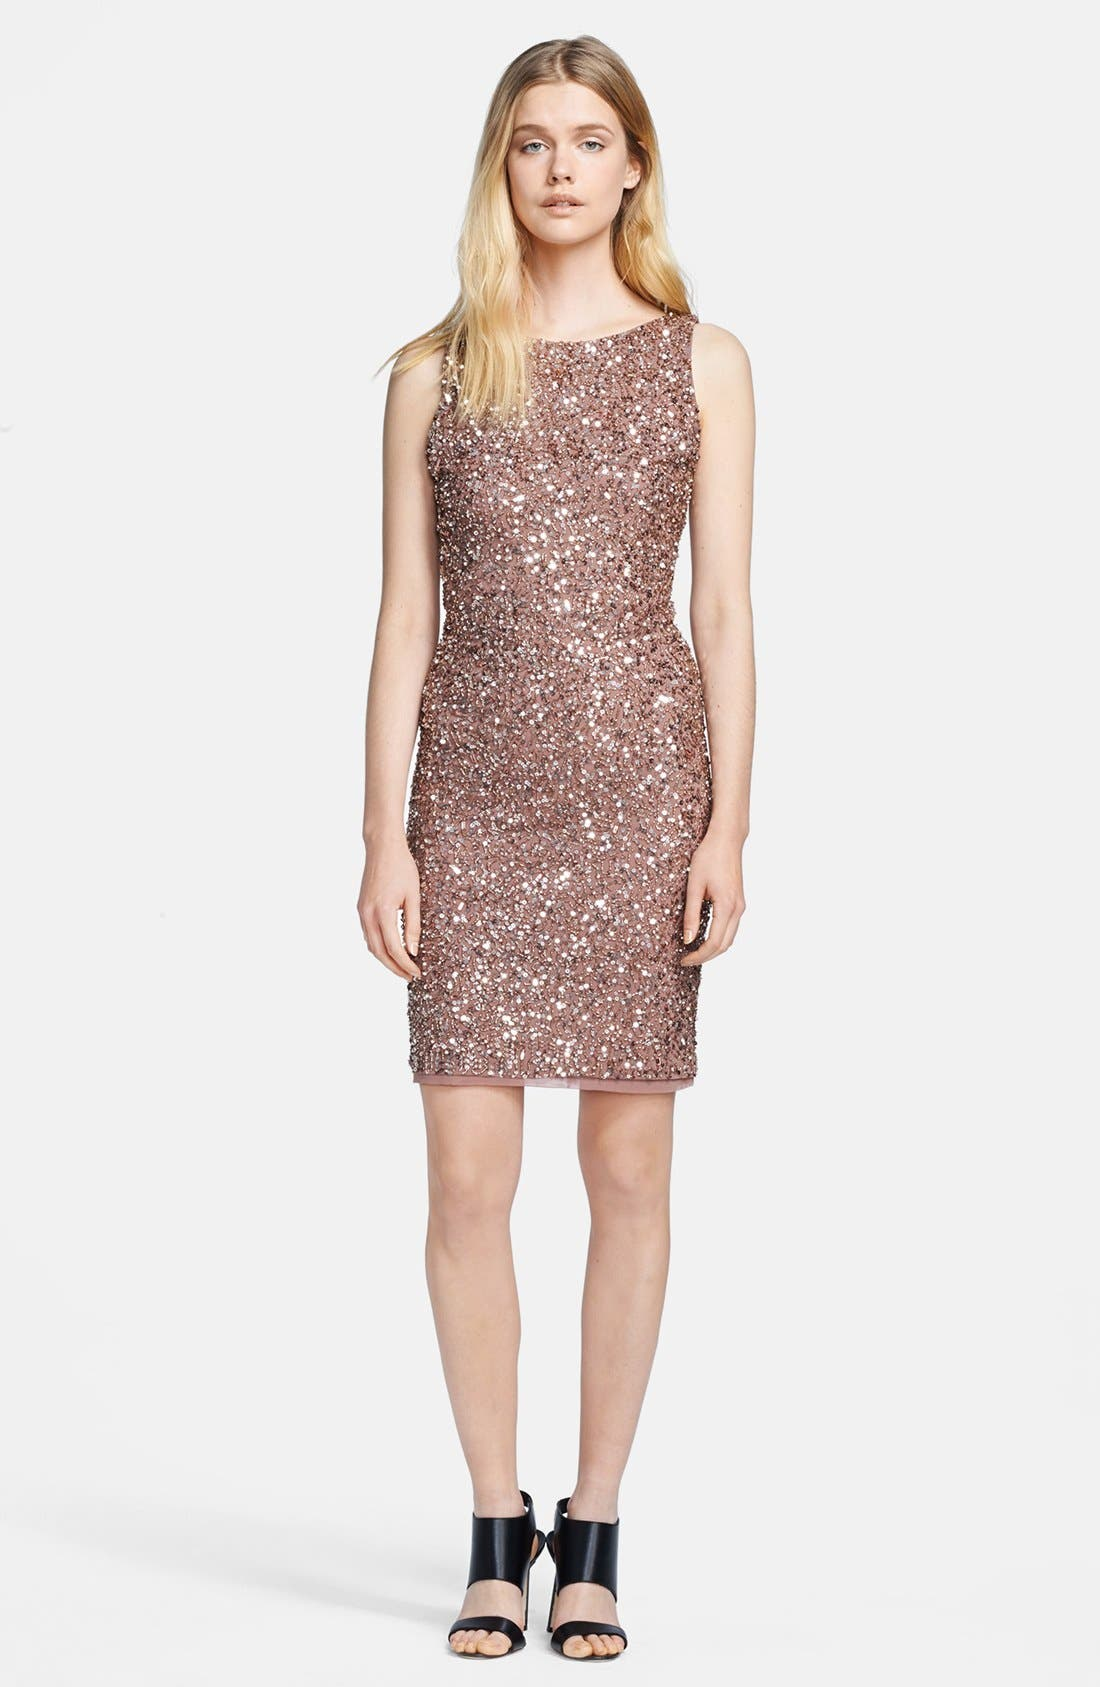 Alternate Image 1 Selected - Alice + Olivia 'Kimber' Sleeveless Bead Embellished Dress